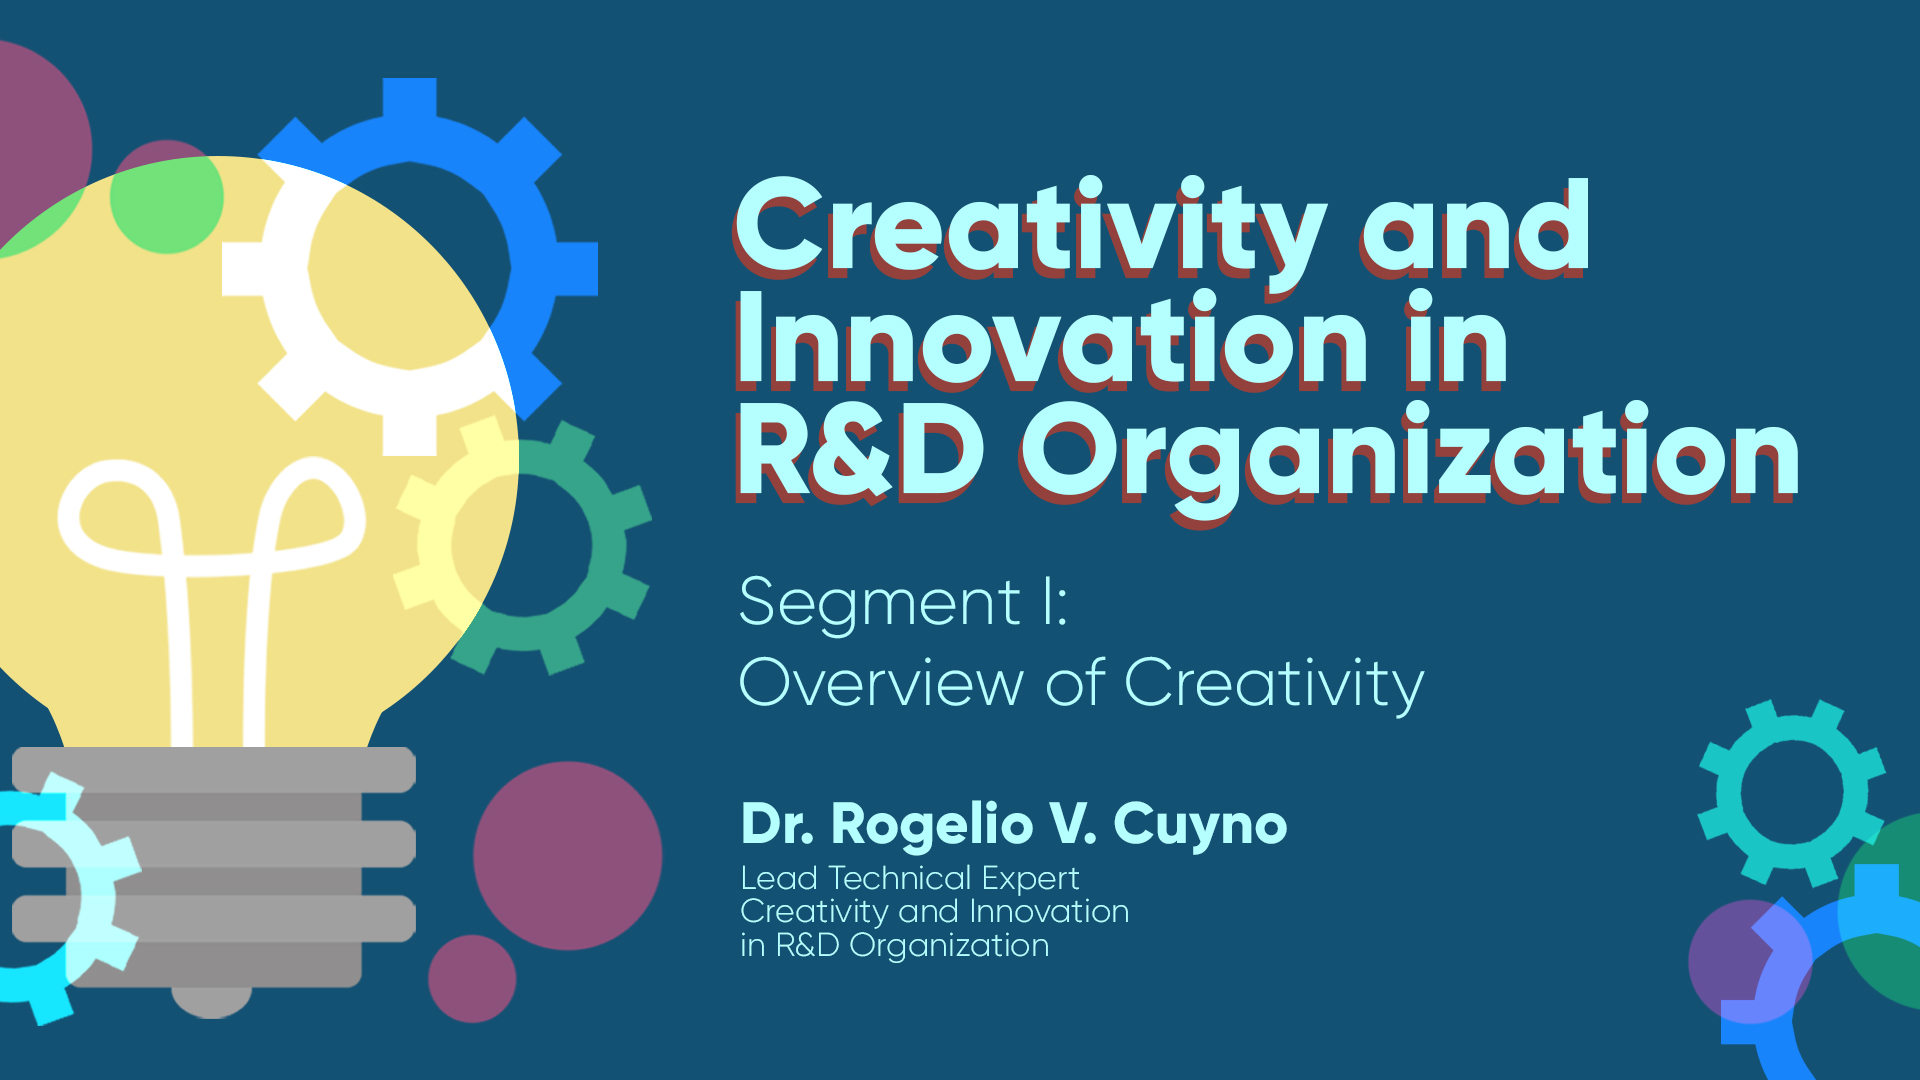 Creativity and Innovation in R&D Organization - Segment I: Overview of Creativity | Dr. Rogelio V. Cuyno